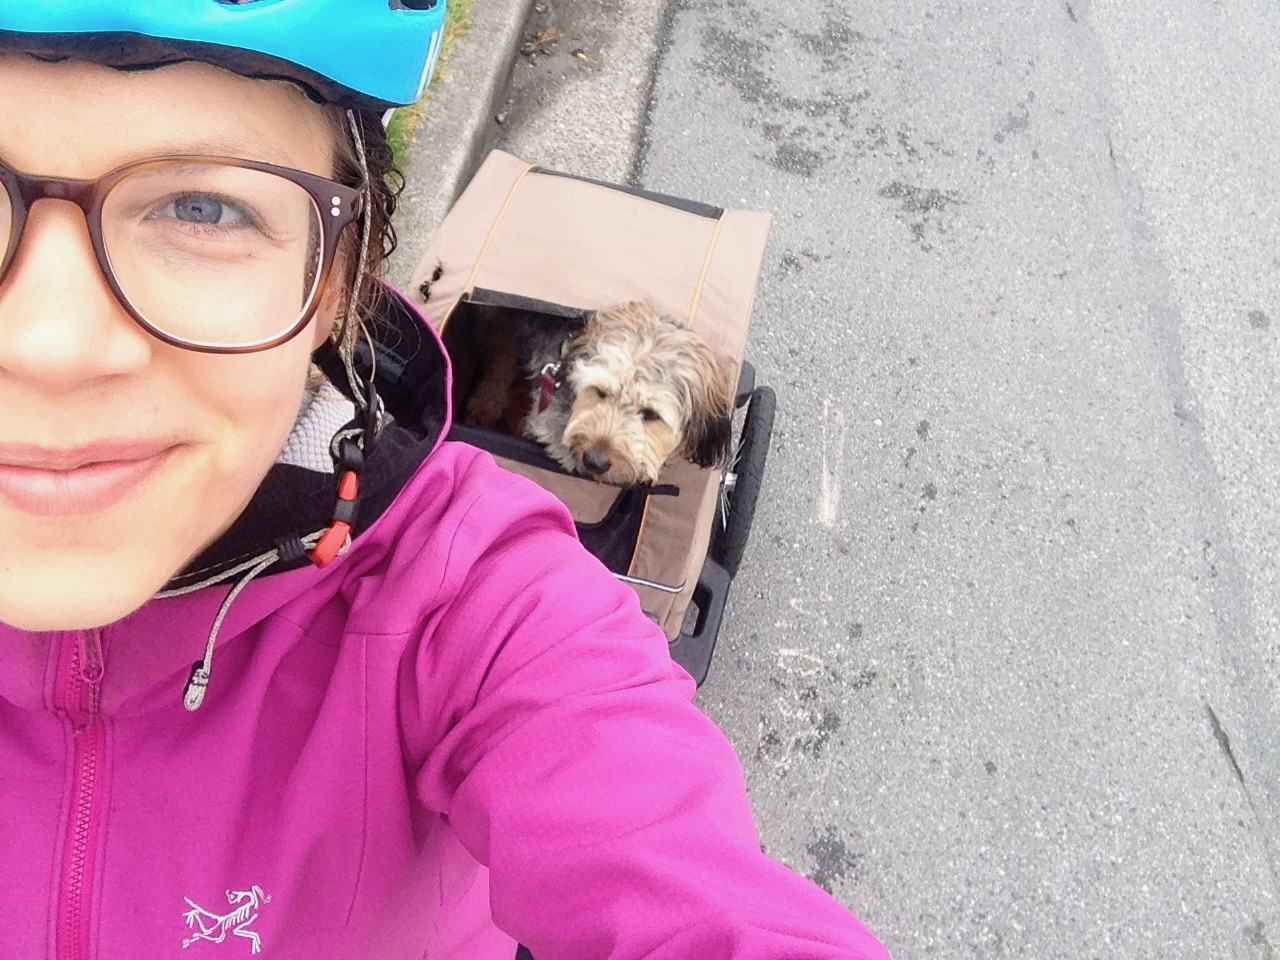 michelle pulling dog on bike